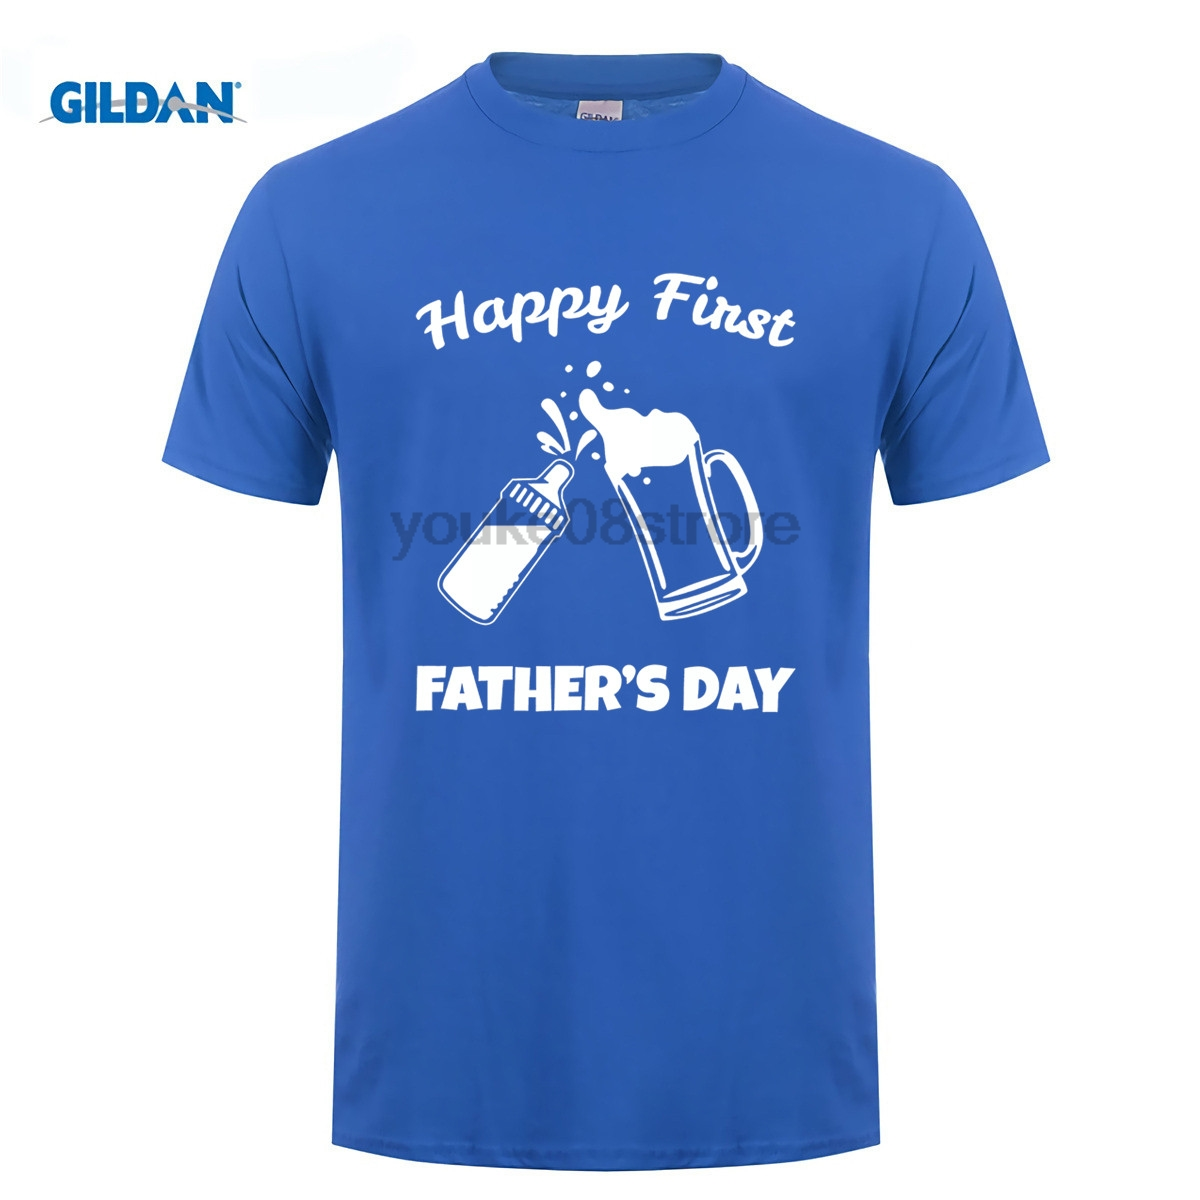 GILDAN 100% Cotton O-neck custom printed T-shirt Mens Fathers Day Gifts Happy First Fathers Day T-Shirt